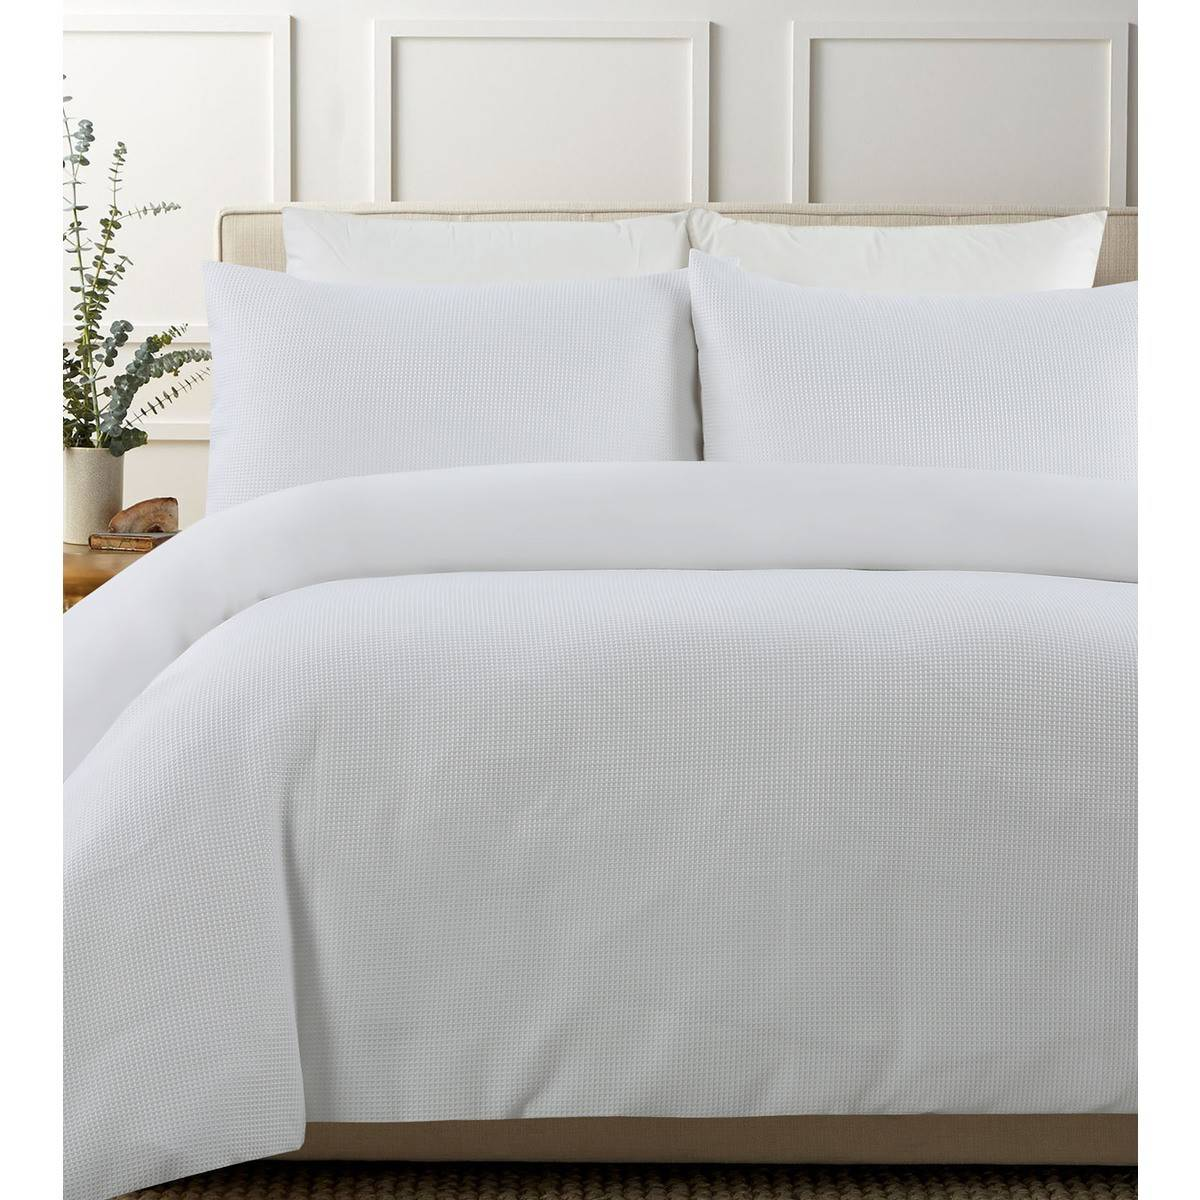 Big W Queen Quilt Covers Smart Value Waffle Quilt Cover Set White King Big W